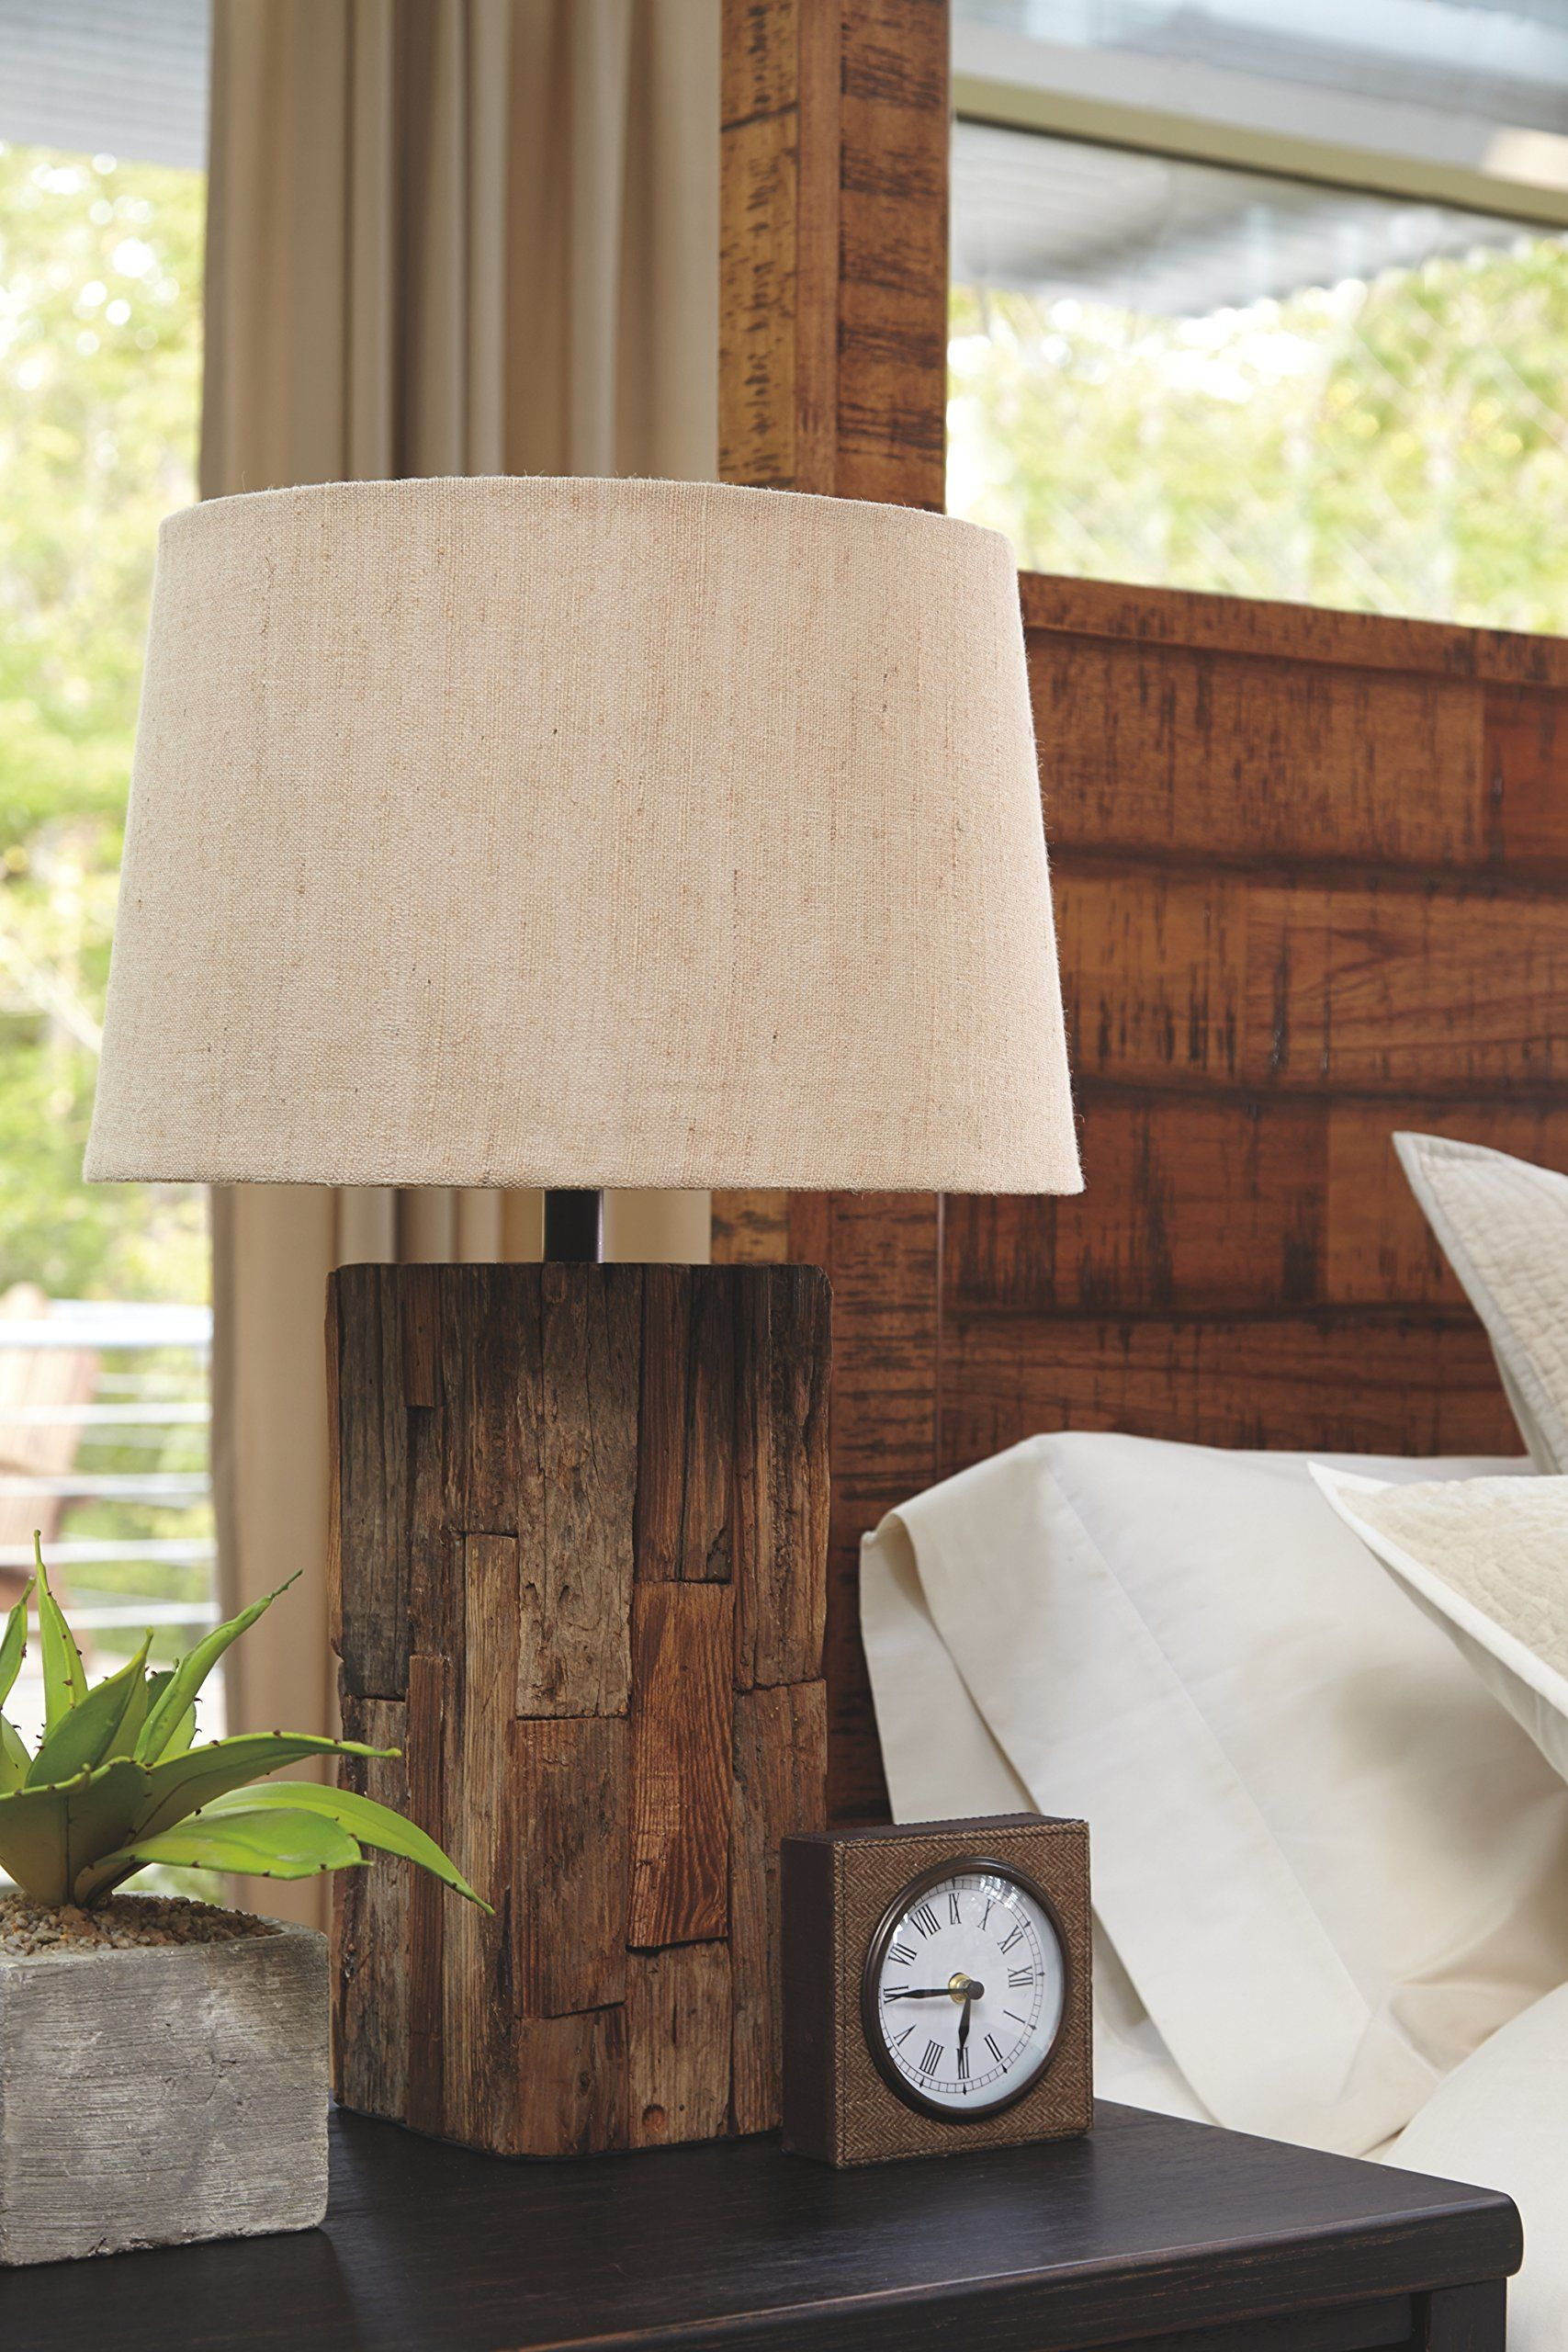 Ashley Furniture Signature Design Selemah Table Lamp Reclaimed Wood Base Light Brown Want Ad Table Lamp Wood Decorative Table Lamps Beautiful Table Lamp